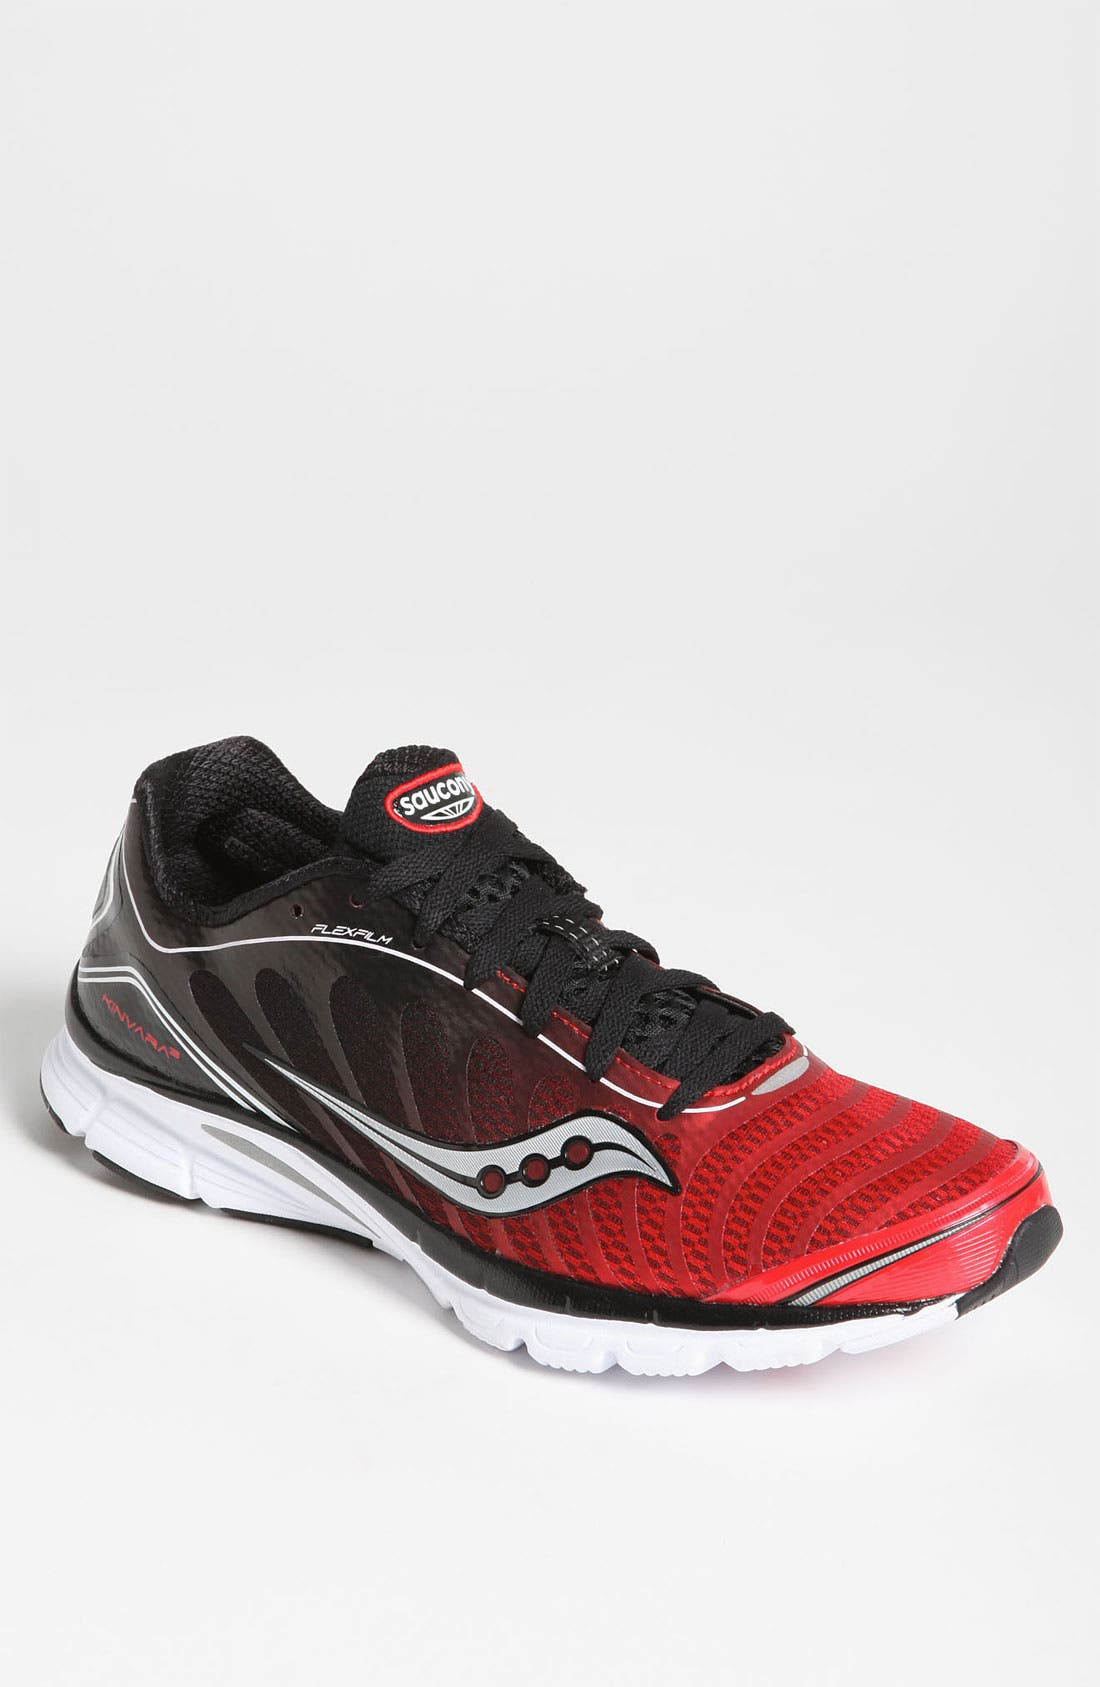 Alternate Image 1 Selected - Saucony 'ProGrid Kinvara 3' Running Shoe (Men) (Online Only)